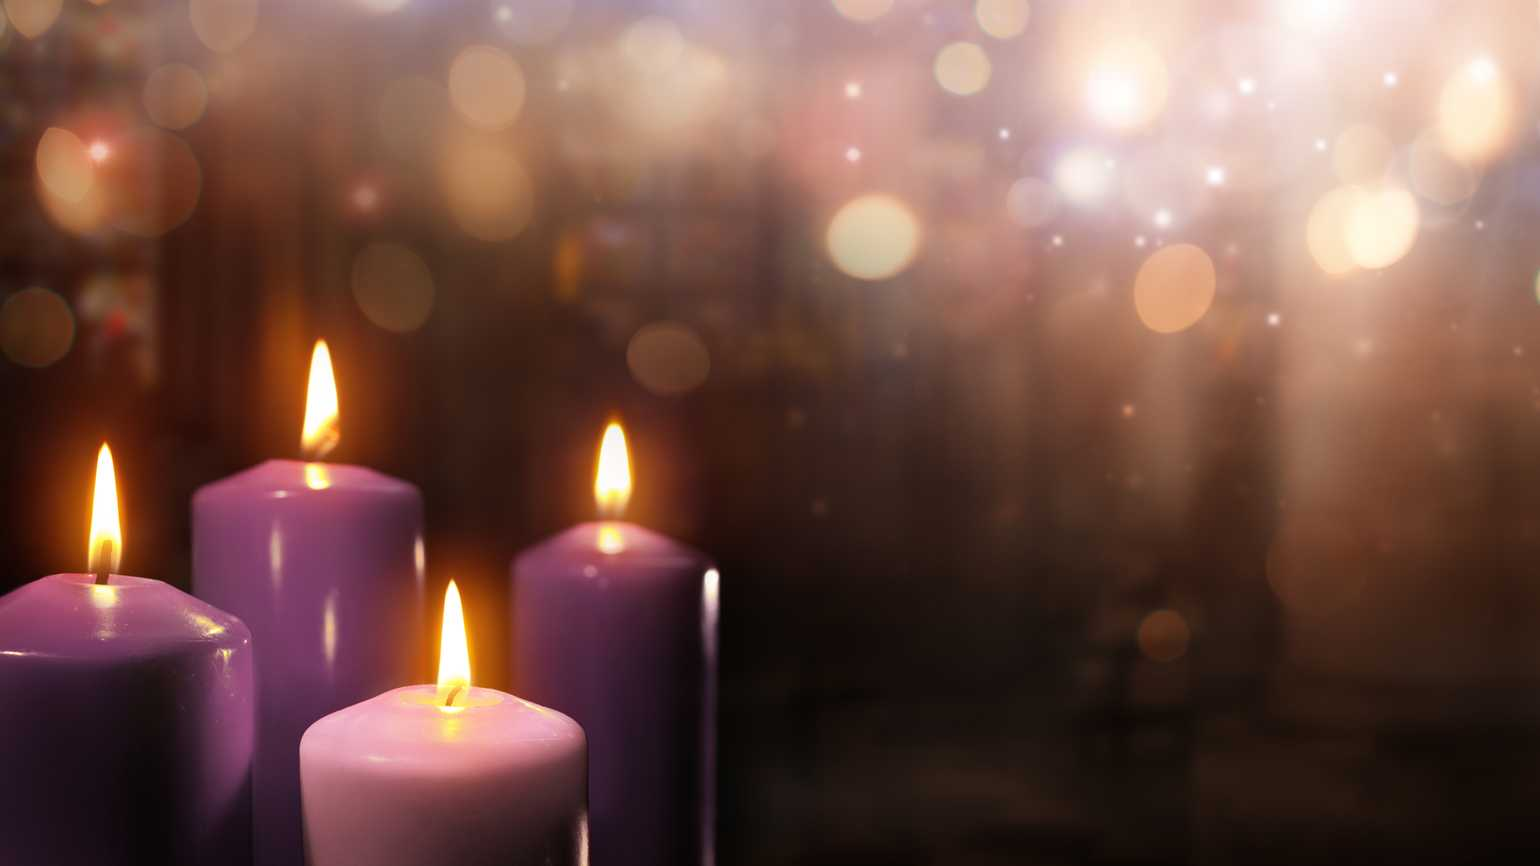 A collection of purple Advent candles in a church.